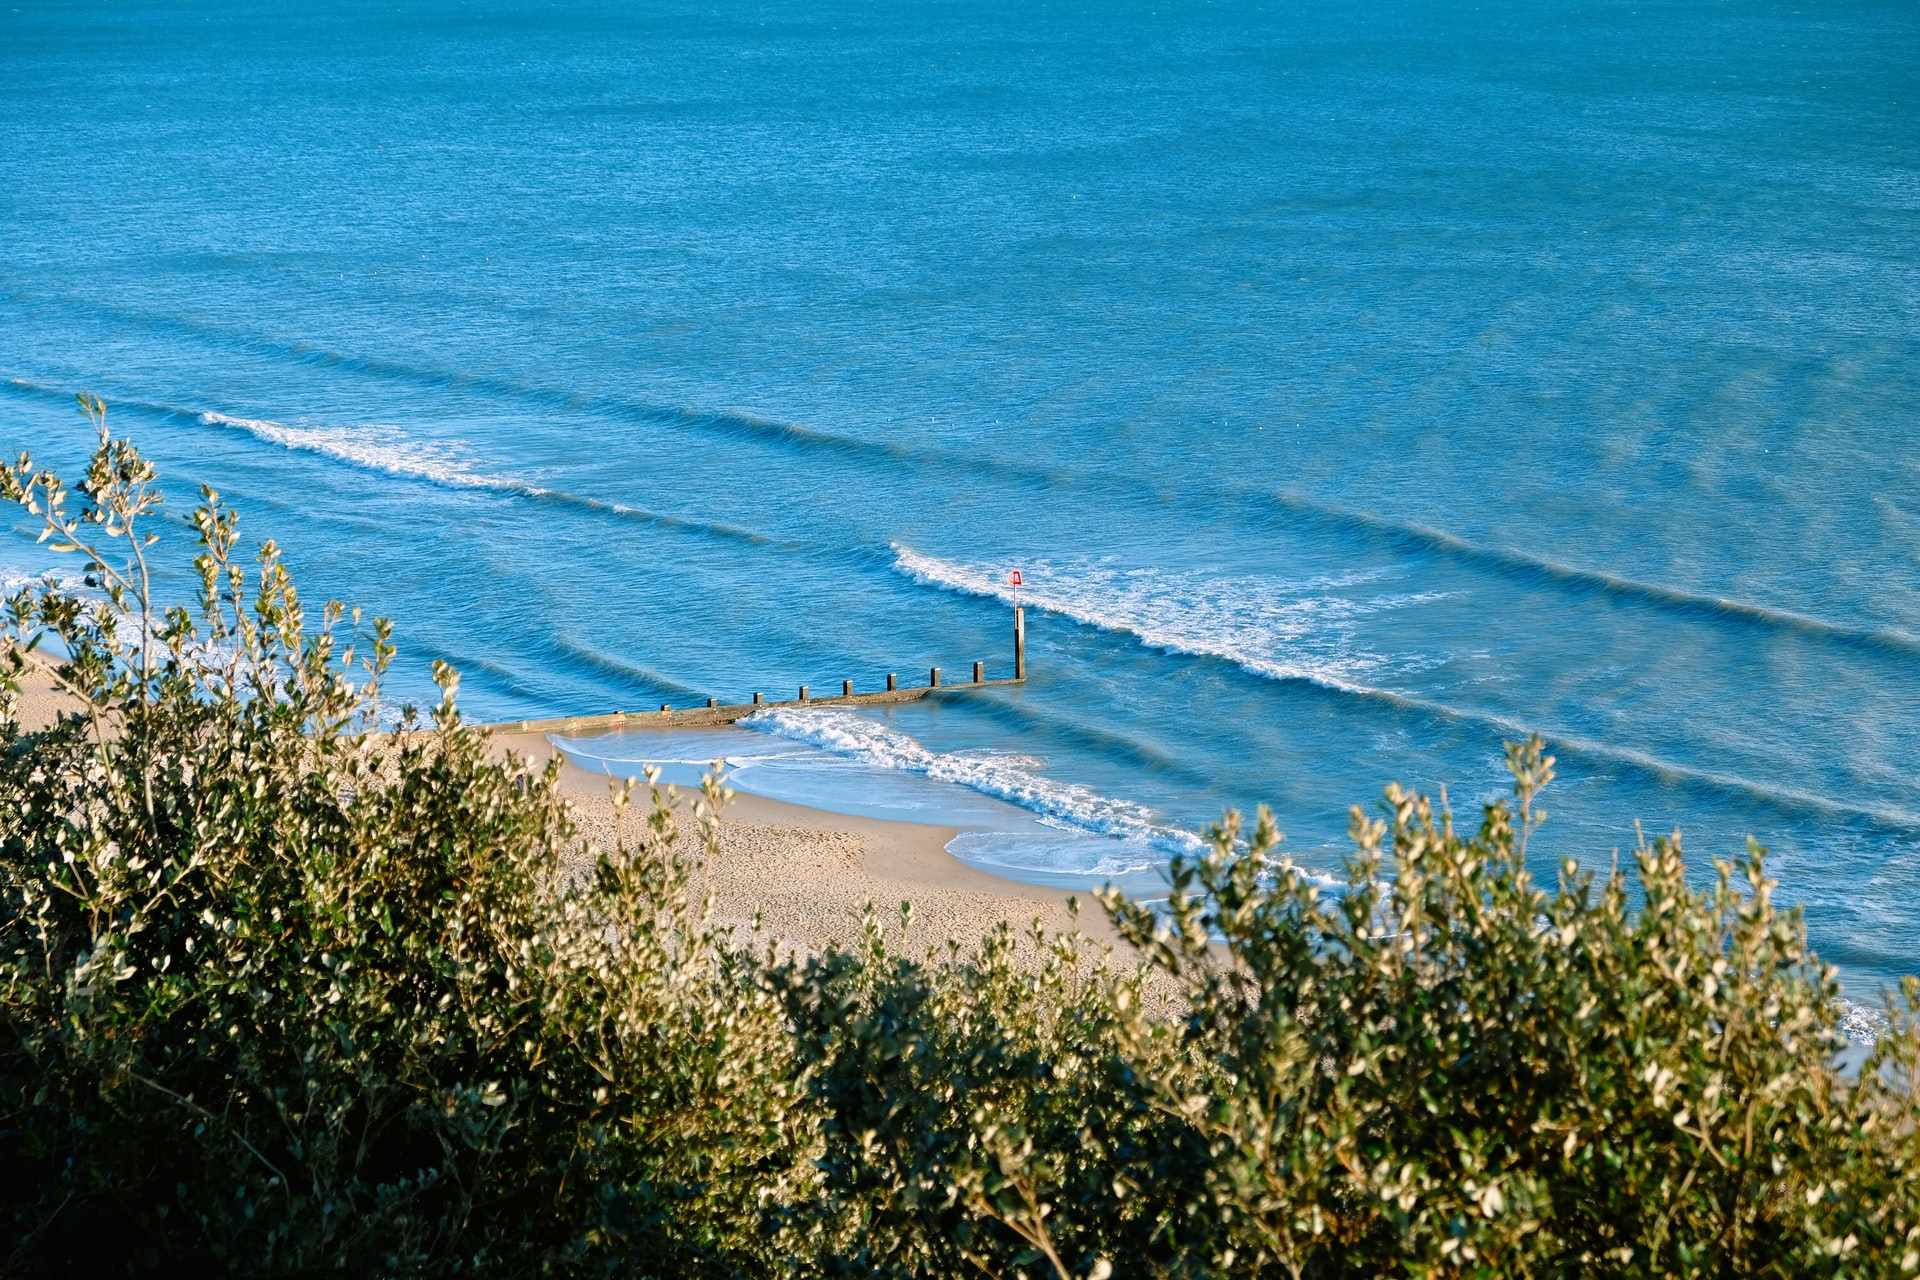 view-of-beach-and-blue-sea-from-above-in-bournemouth-days-out-in-dorset